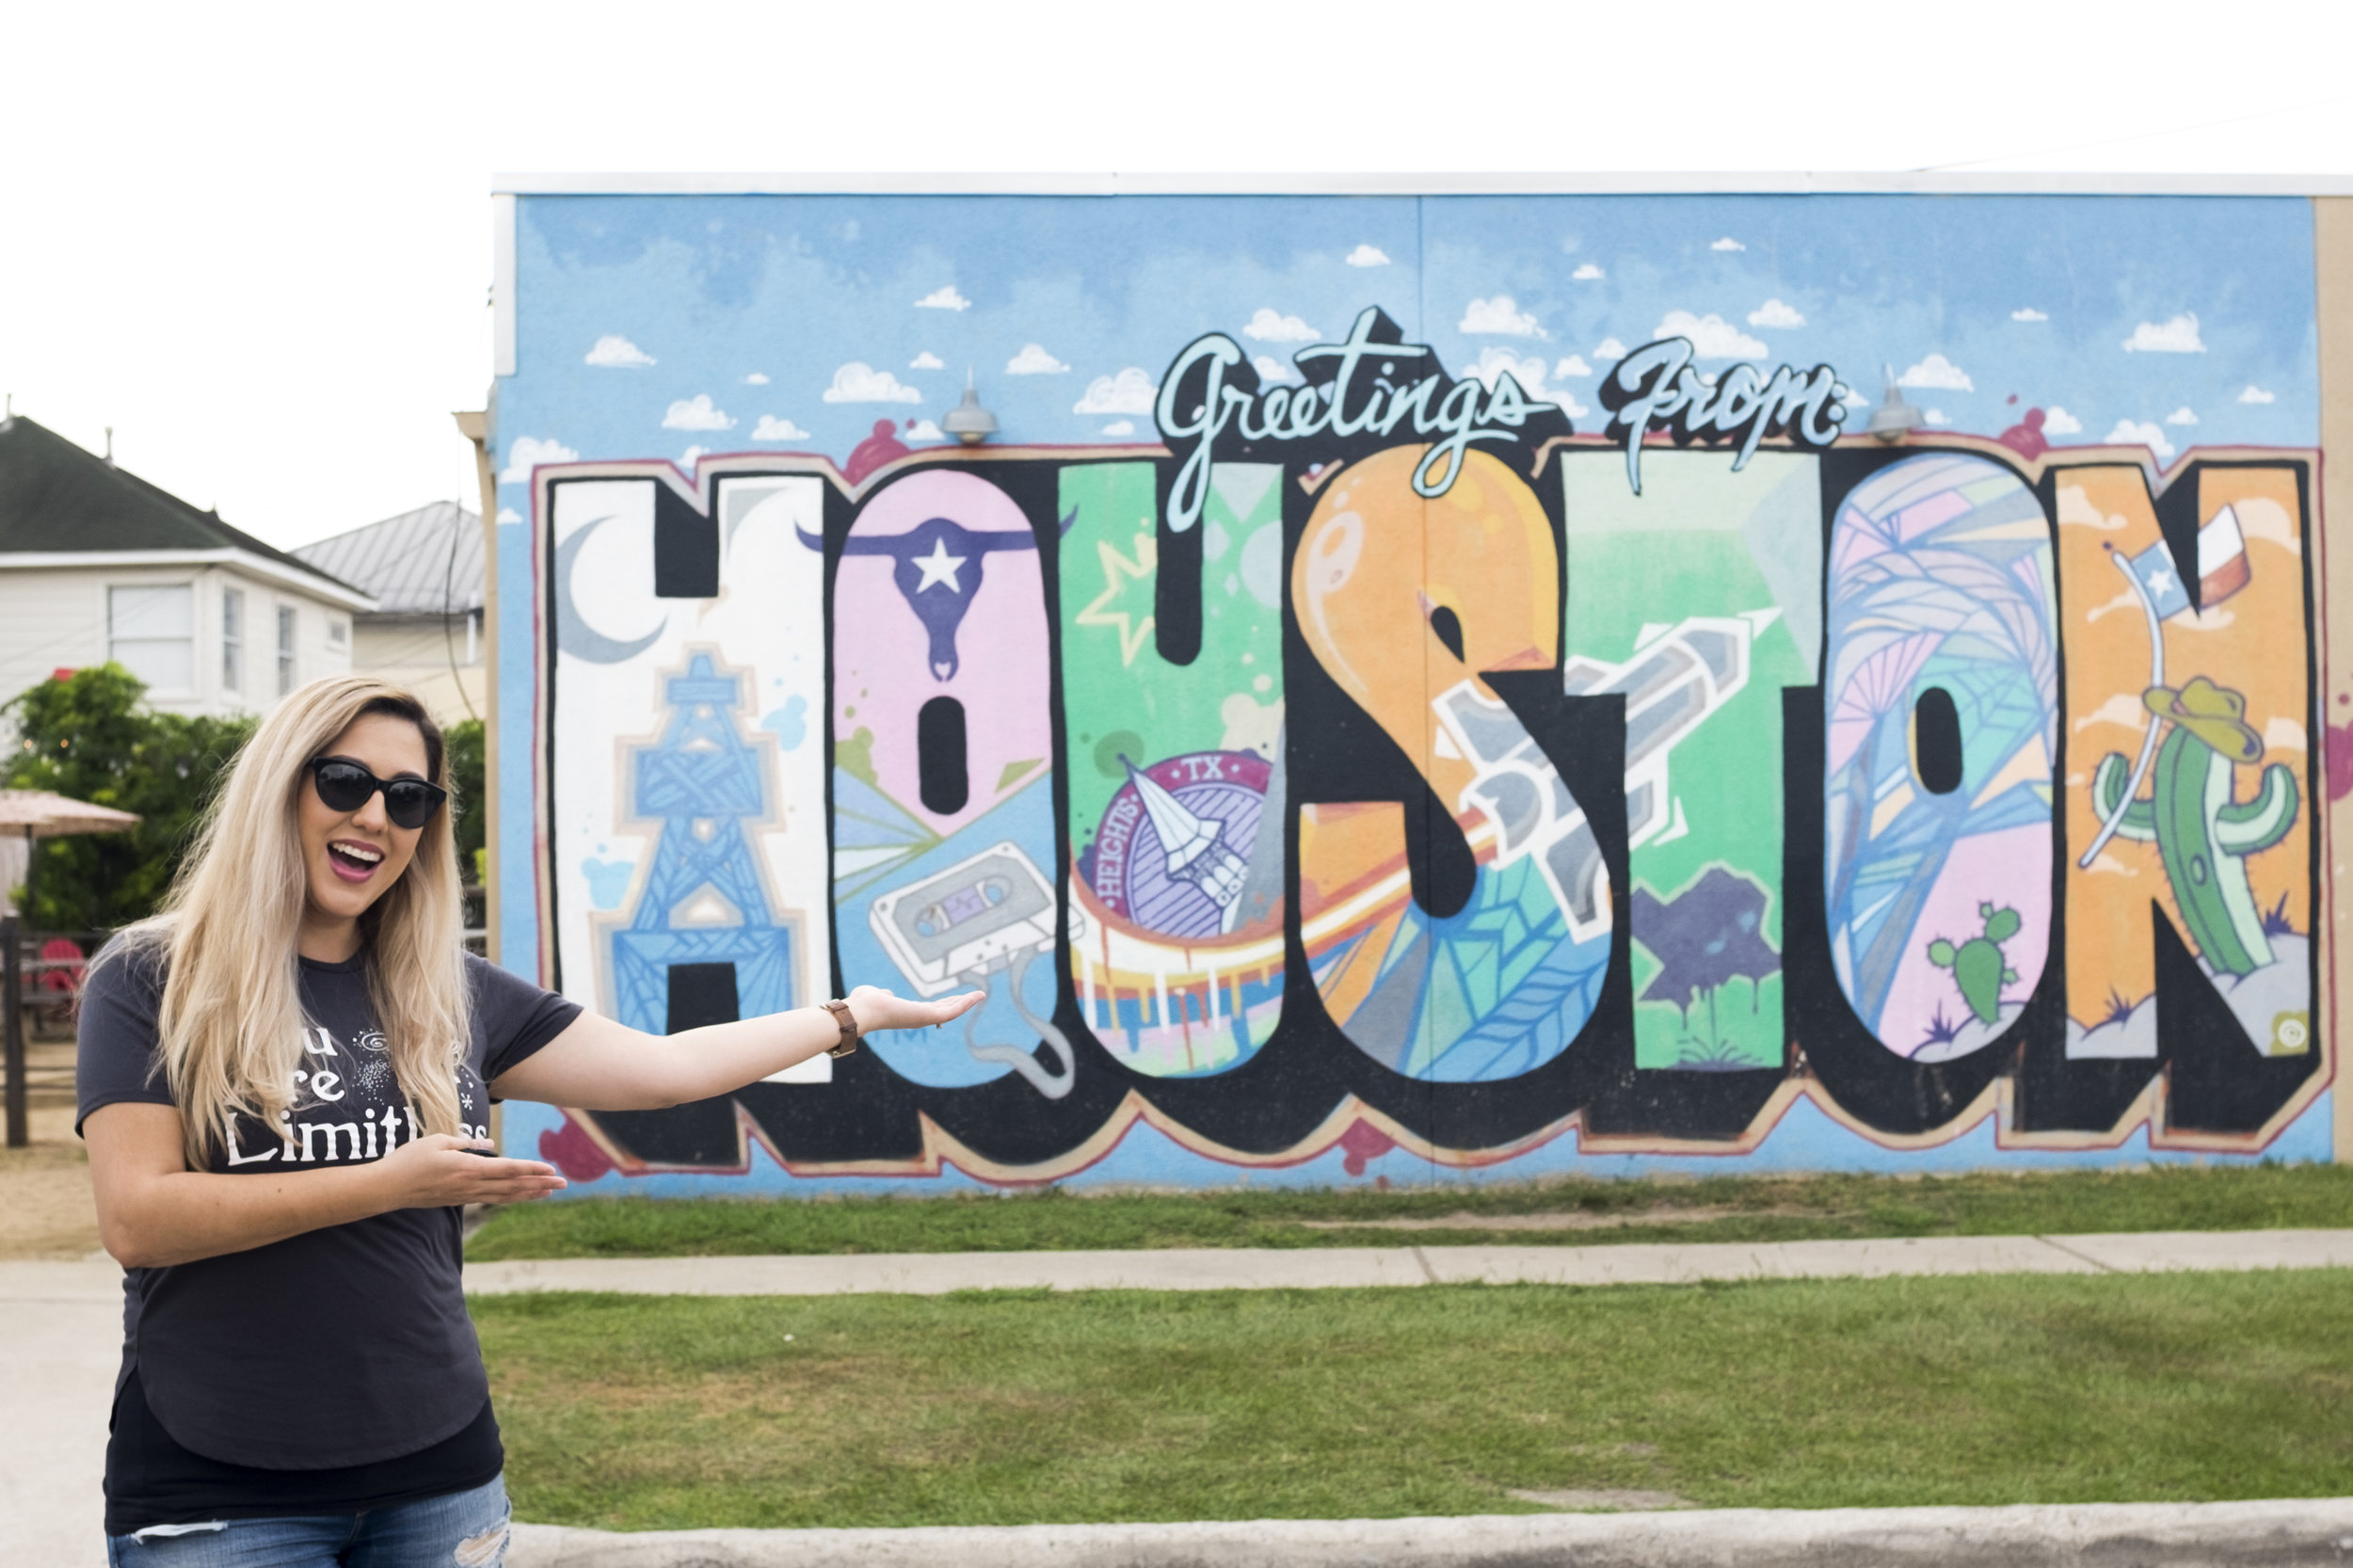 Humidity and my hair do not get along.Mural by Daniel Anguilu - located at 3601 White Oak Drive.